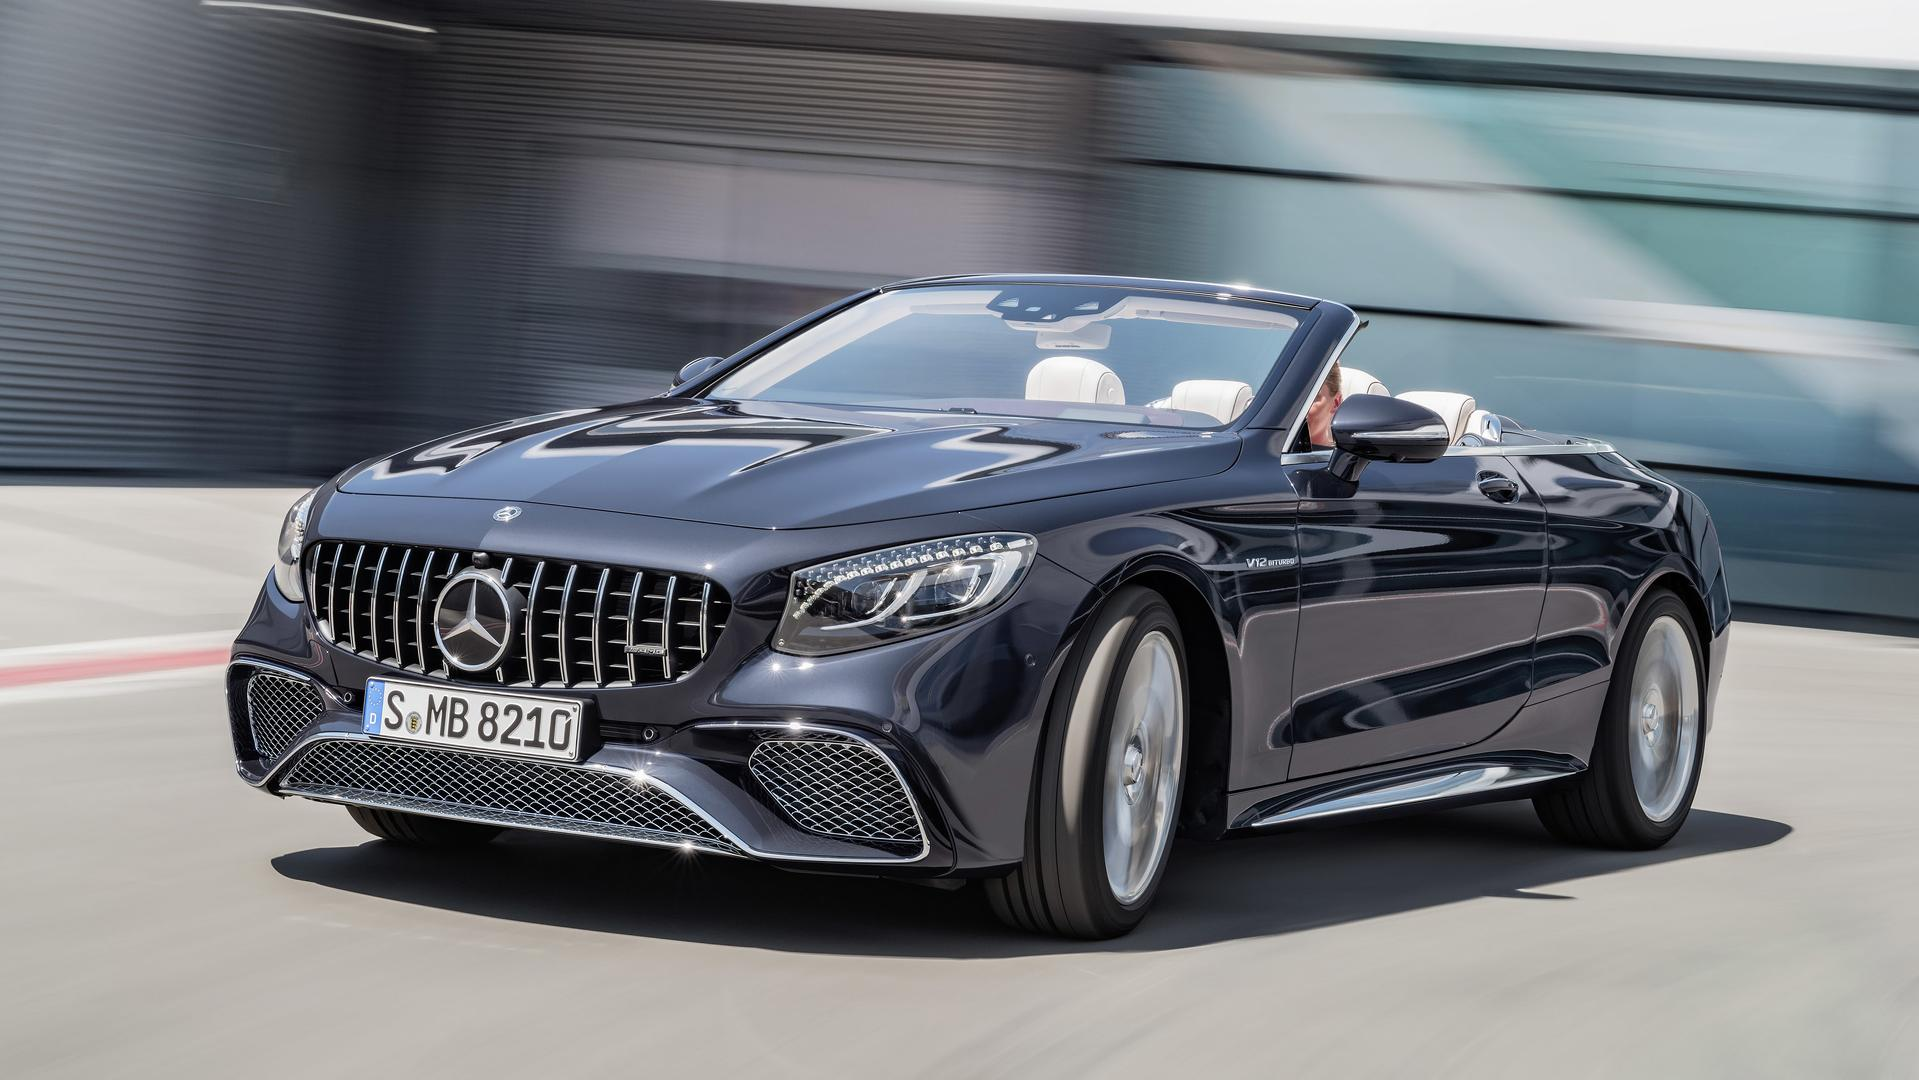 https://icdn-5.motor1.com/images/mgl/RX9YP/s1/2018-mercedes-amg-s65-cabriolet.jpg